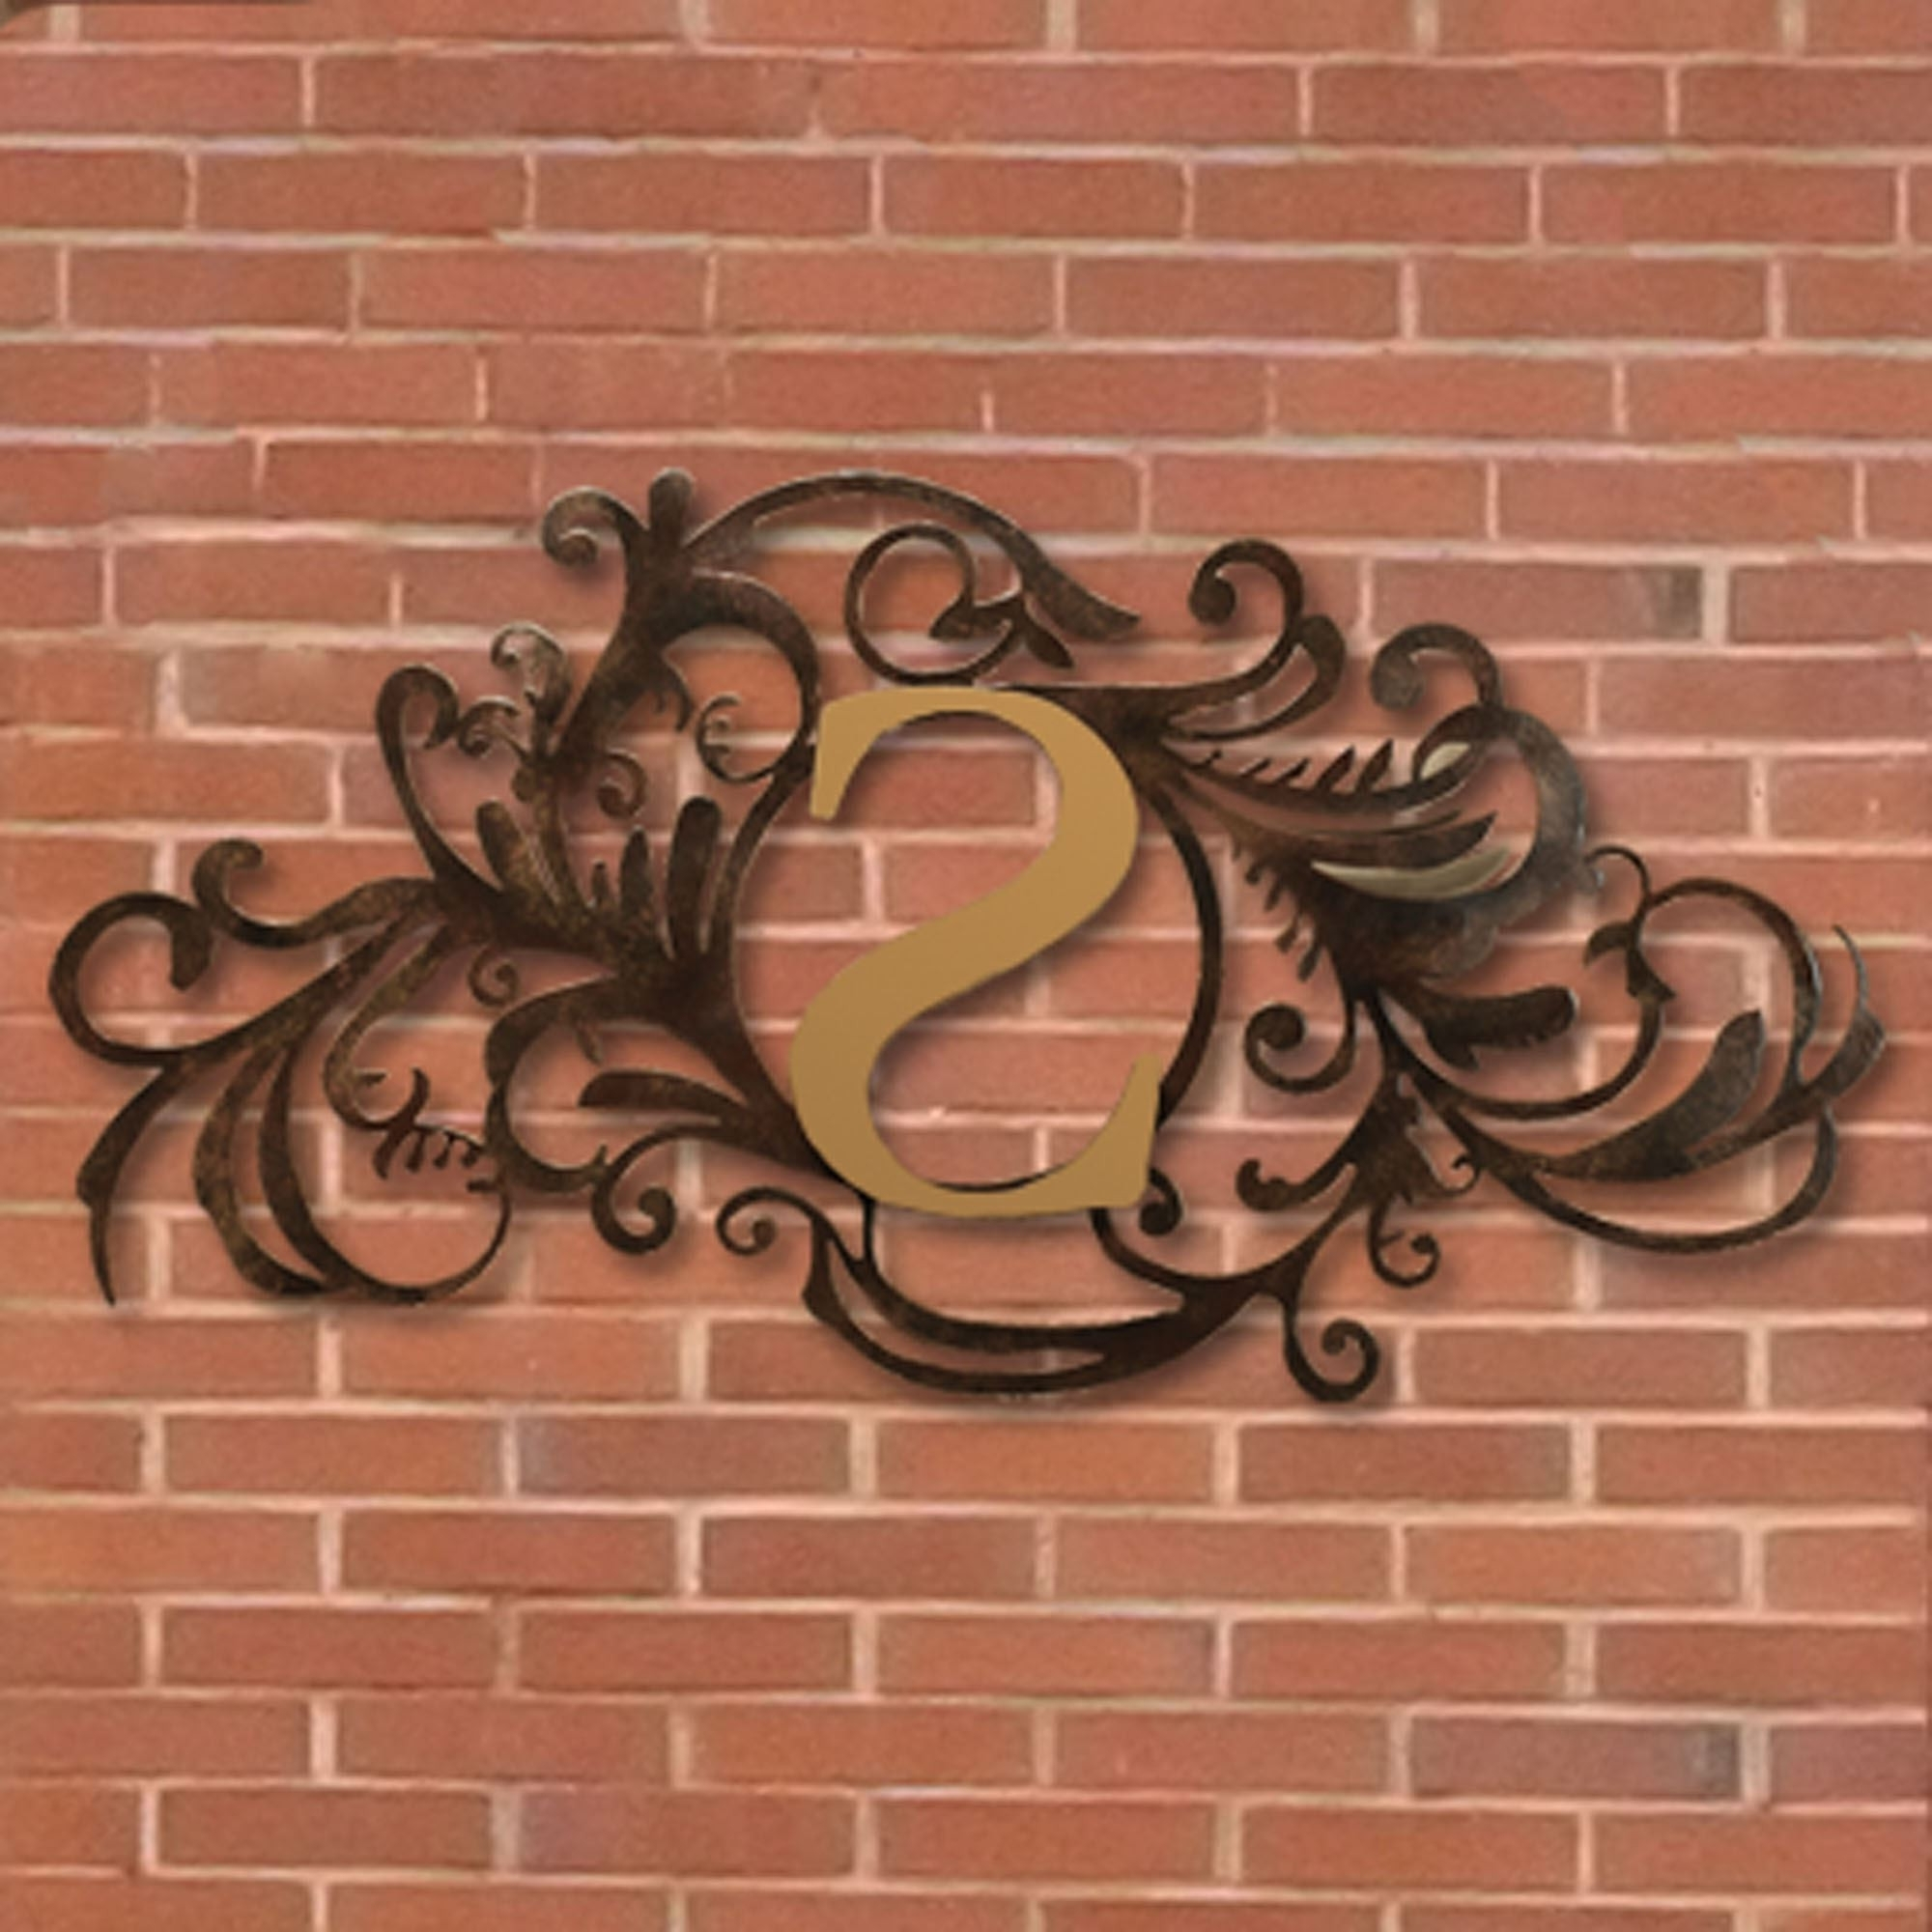 Outdoor Metal Wall Art Wrought Iron Decorative Large Black – Awesome Regarding 2017 Outdoor Wall Art (View 7 of 15)